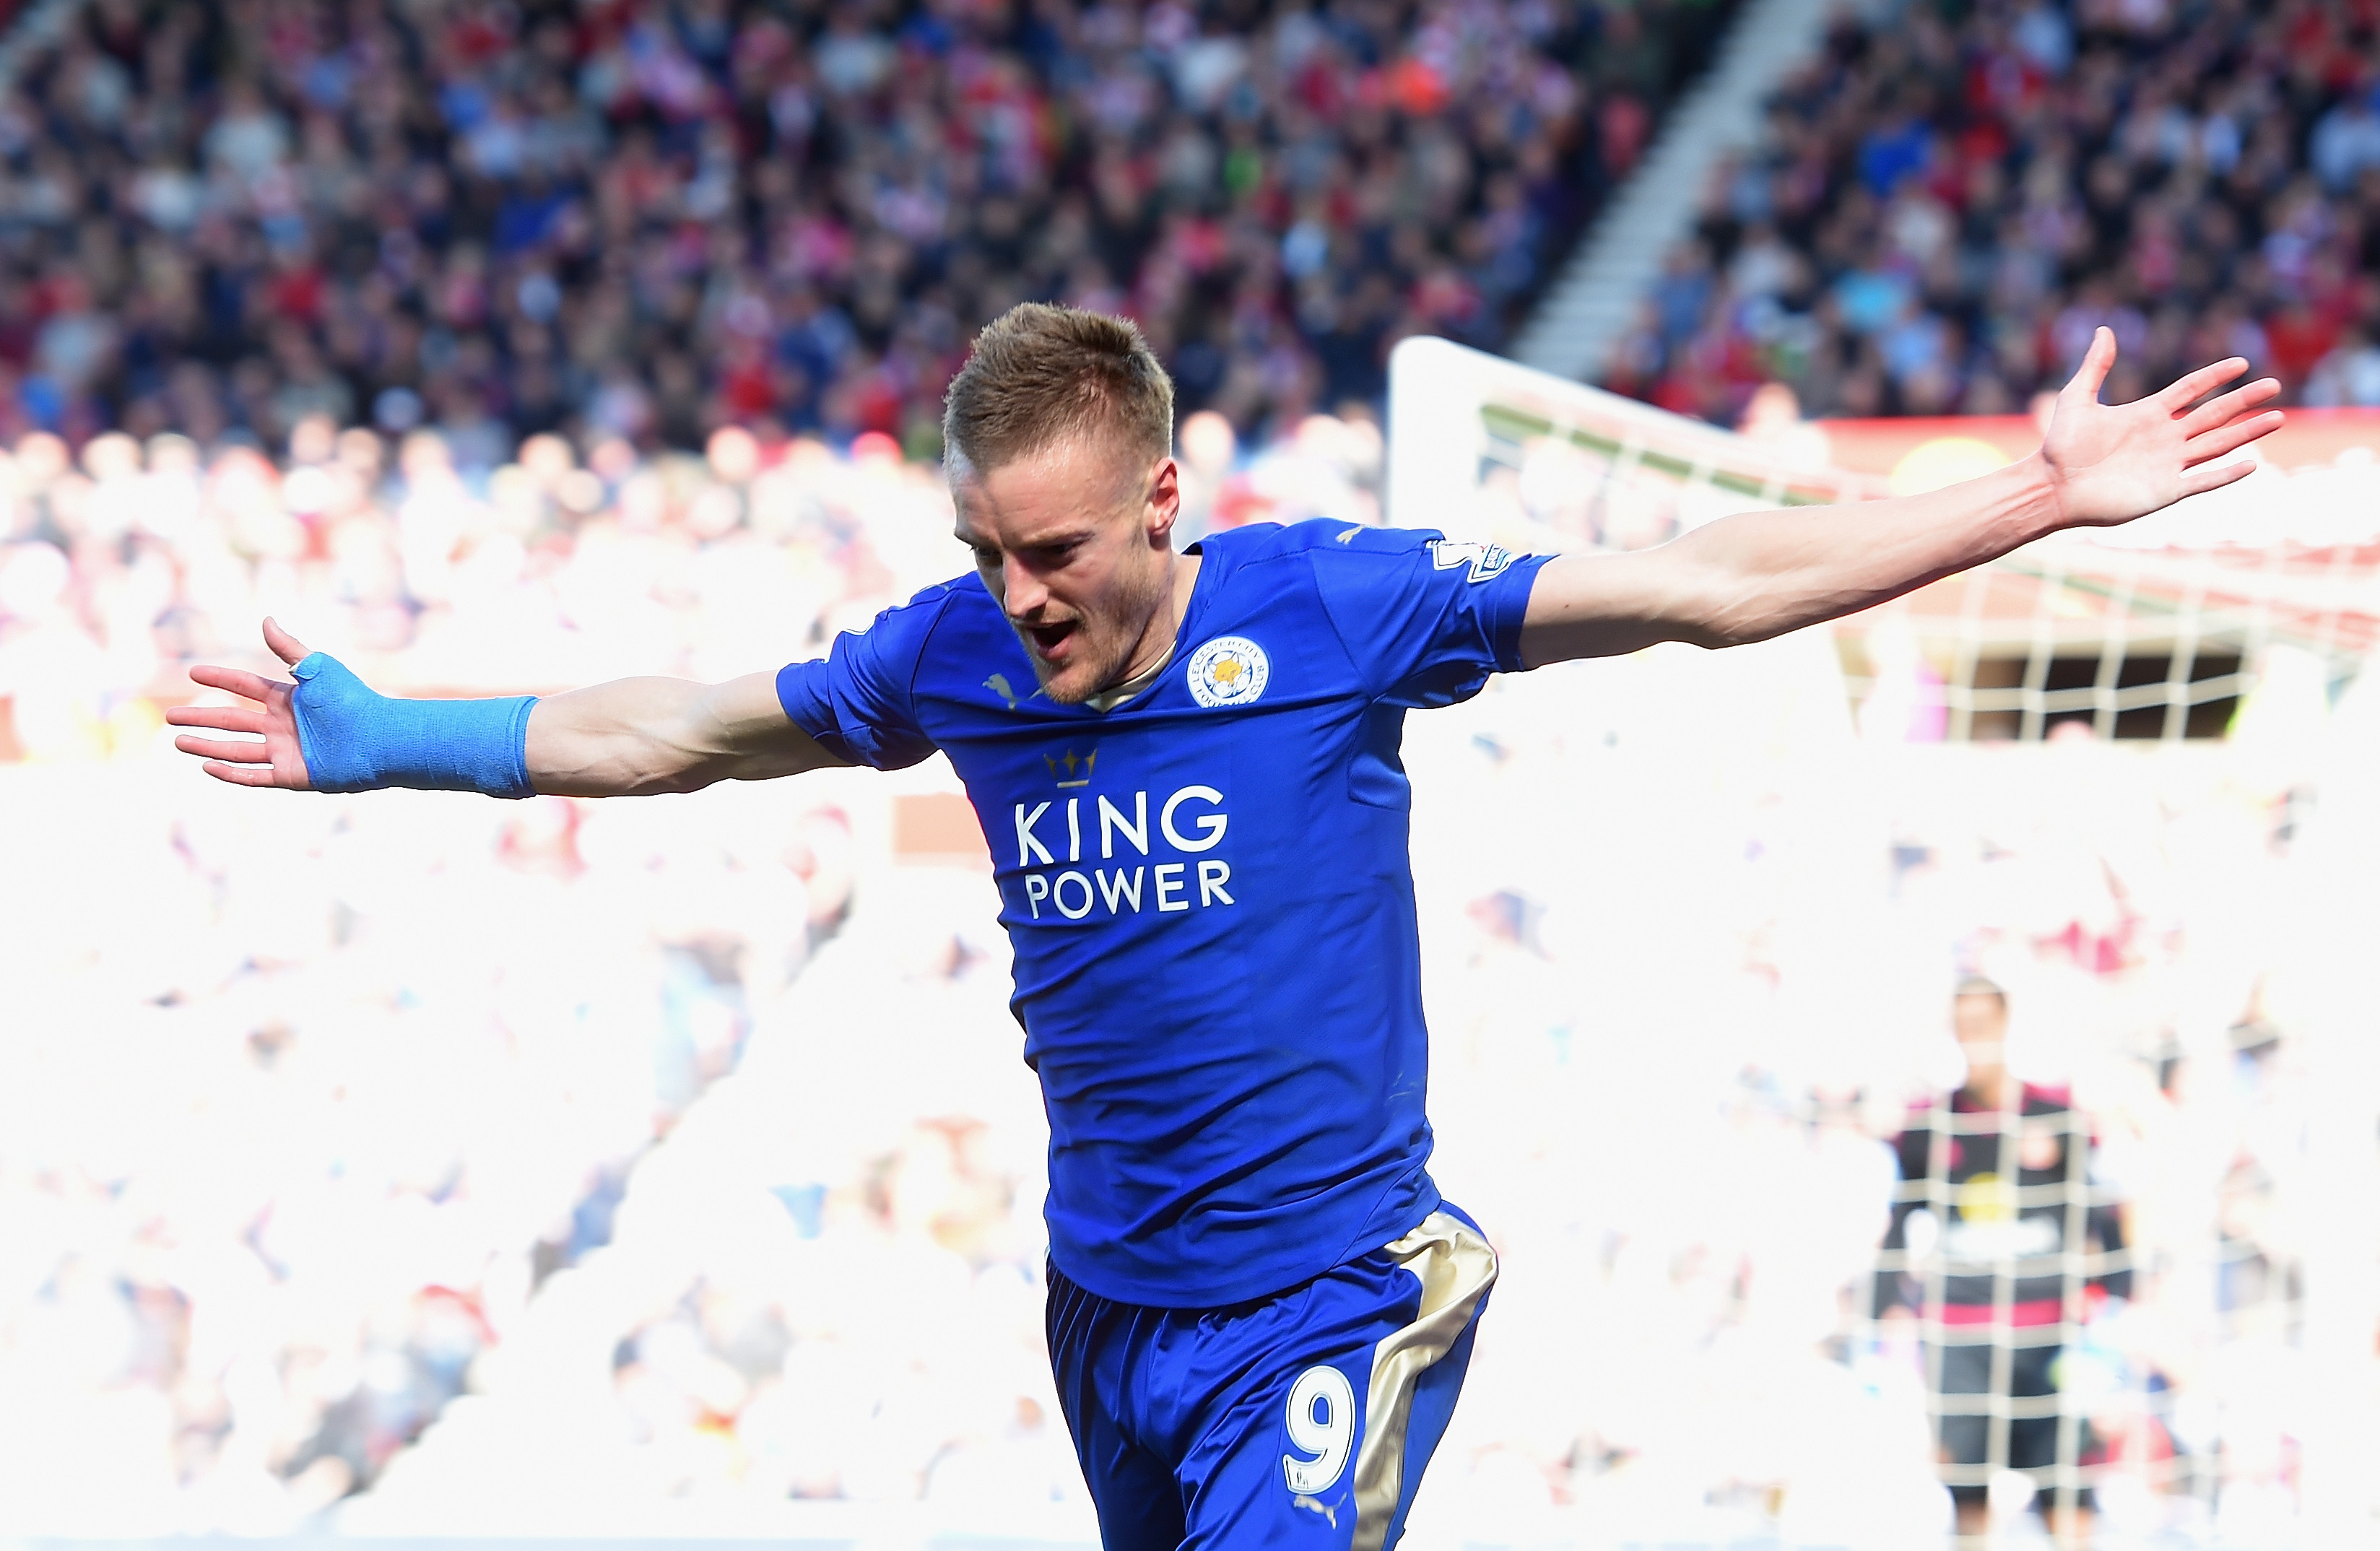 Leicester Odds to Win Title, leicester odds, leicester title odds, leicester city to win title, foxes odds, how many people bet leicester to win